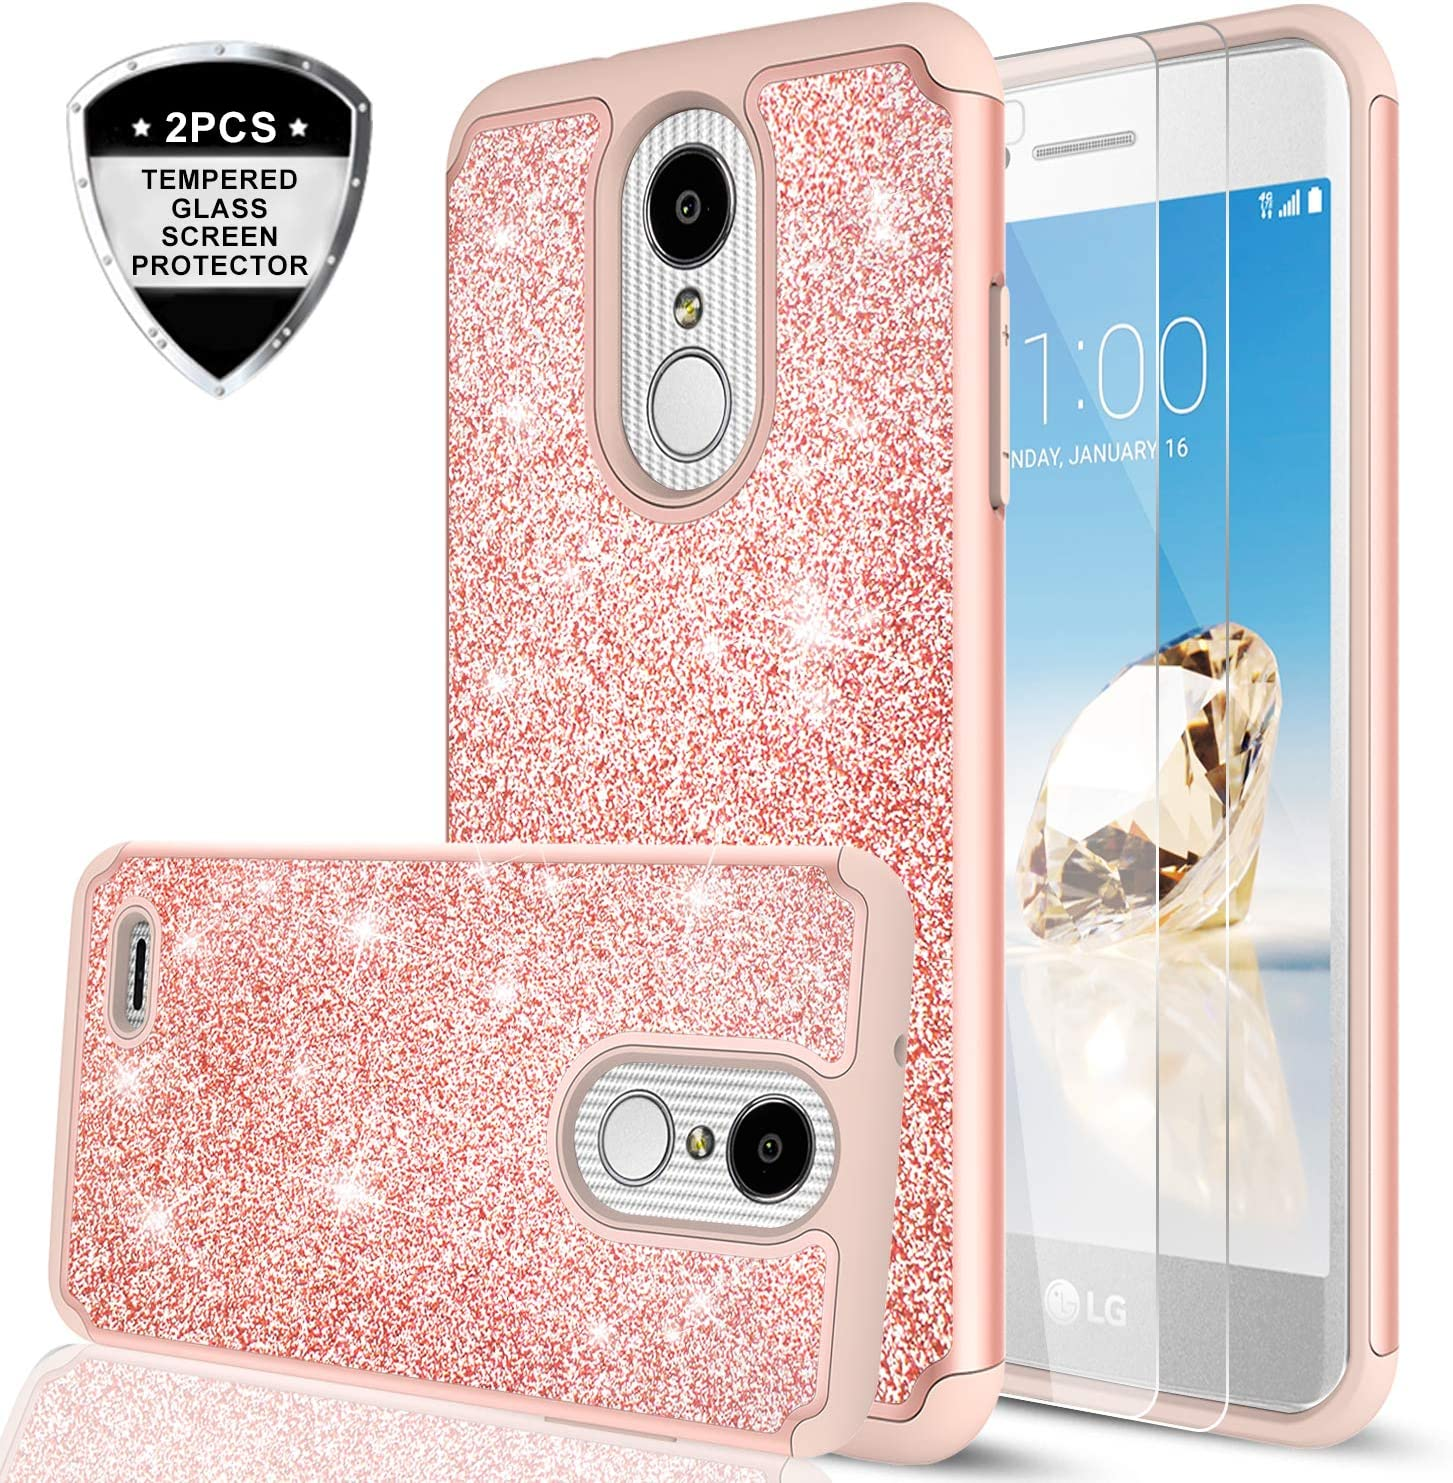 LG Aristo 2 Case, LG Aristo 3/ Tribute Dynasty/Phoenix 4/ Rebel 4/ Aristo 2 Plus/Fortune 2/ Rebel 3 Case w/2PCS Tempered Glass Screen Protector, LeYi Glitter Case for LG K8 Plus 2018 Rose Gold